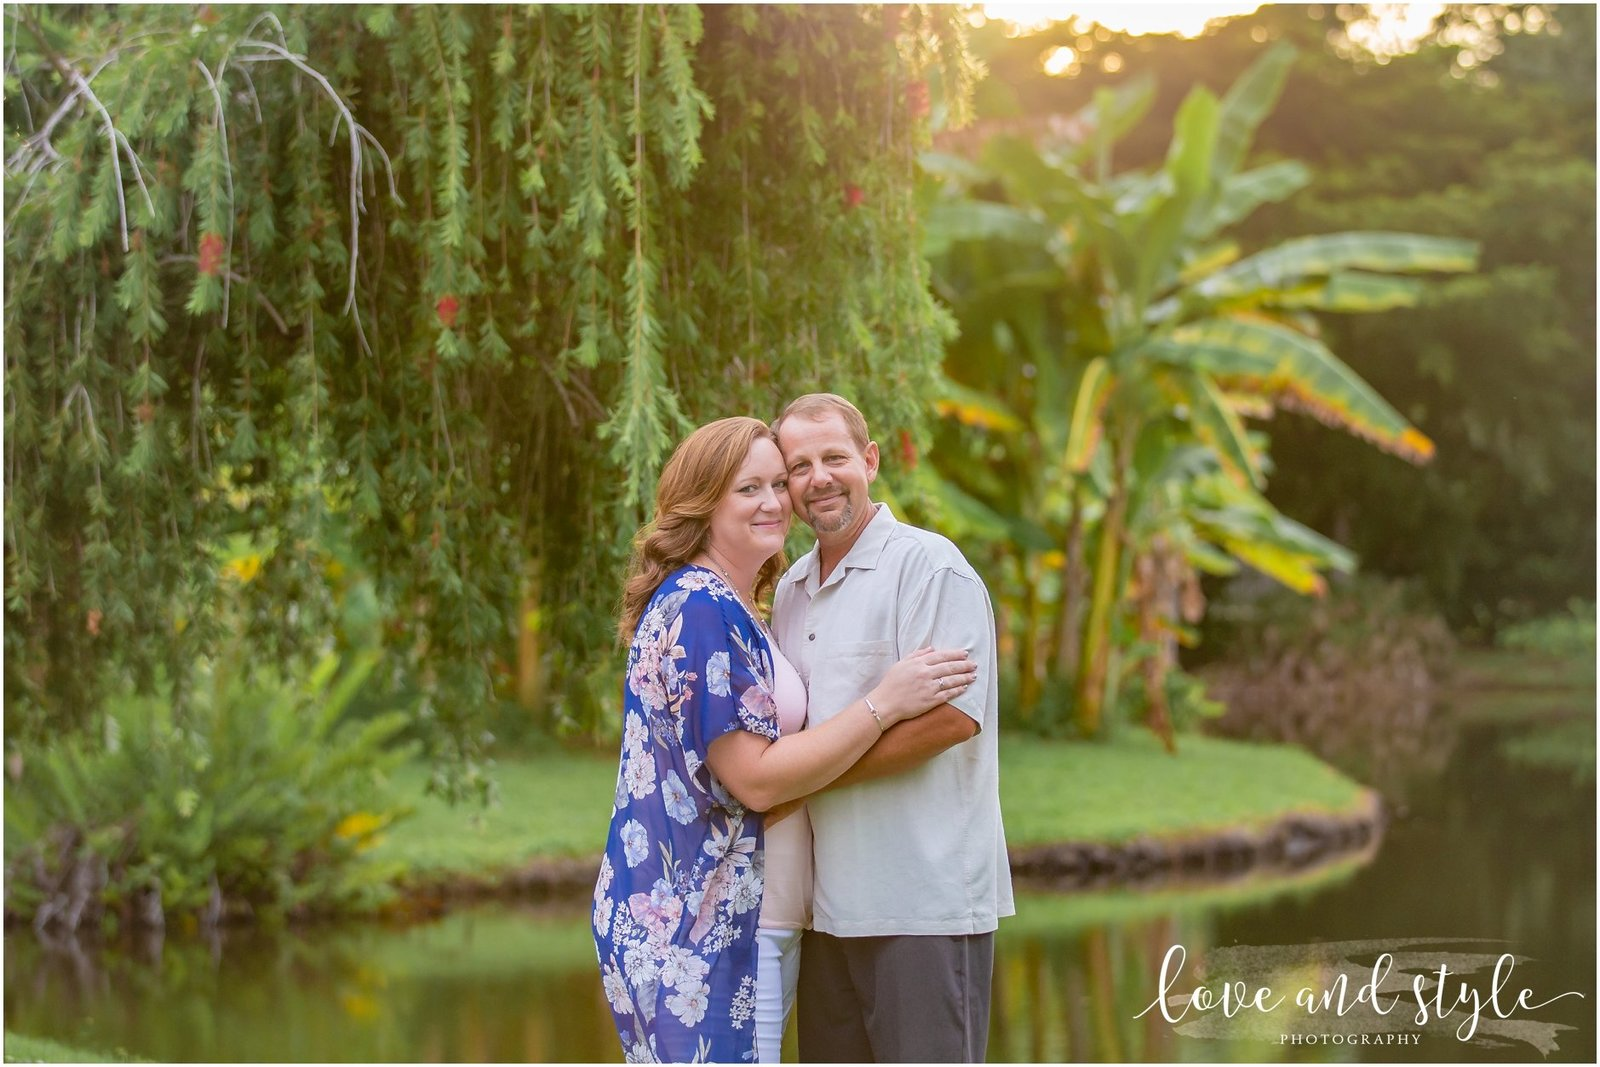 Engagement Photography at Palma Sola Botanical Garden during sunset